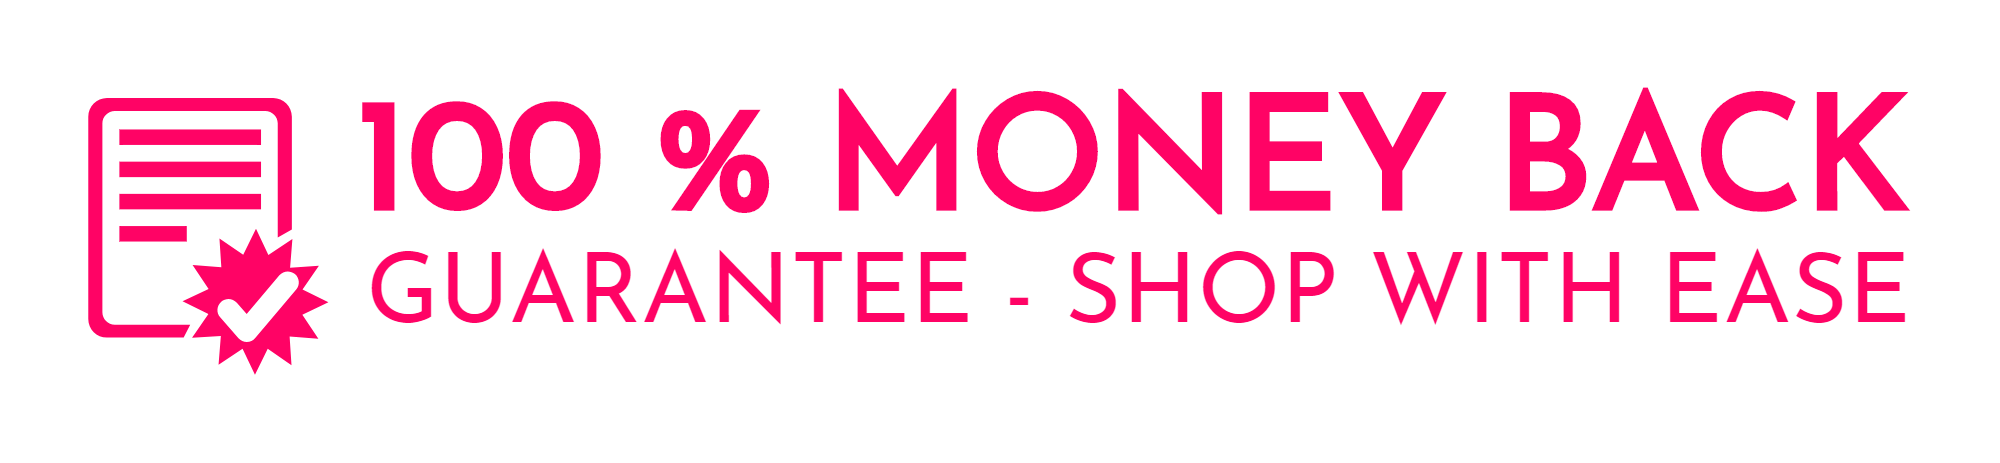 GUARANTEE - SHOP WITH EASE-logo.png